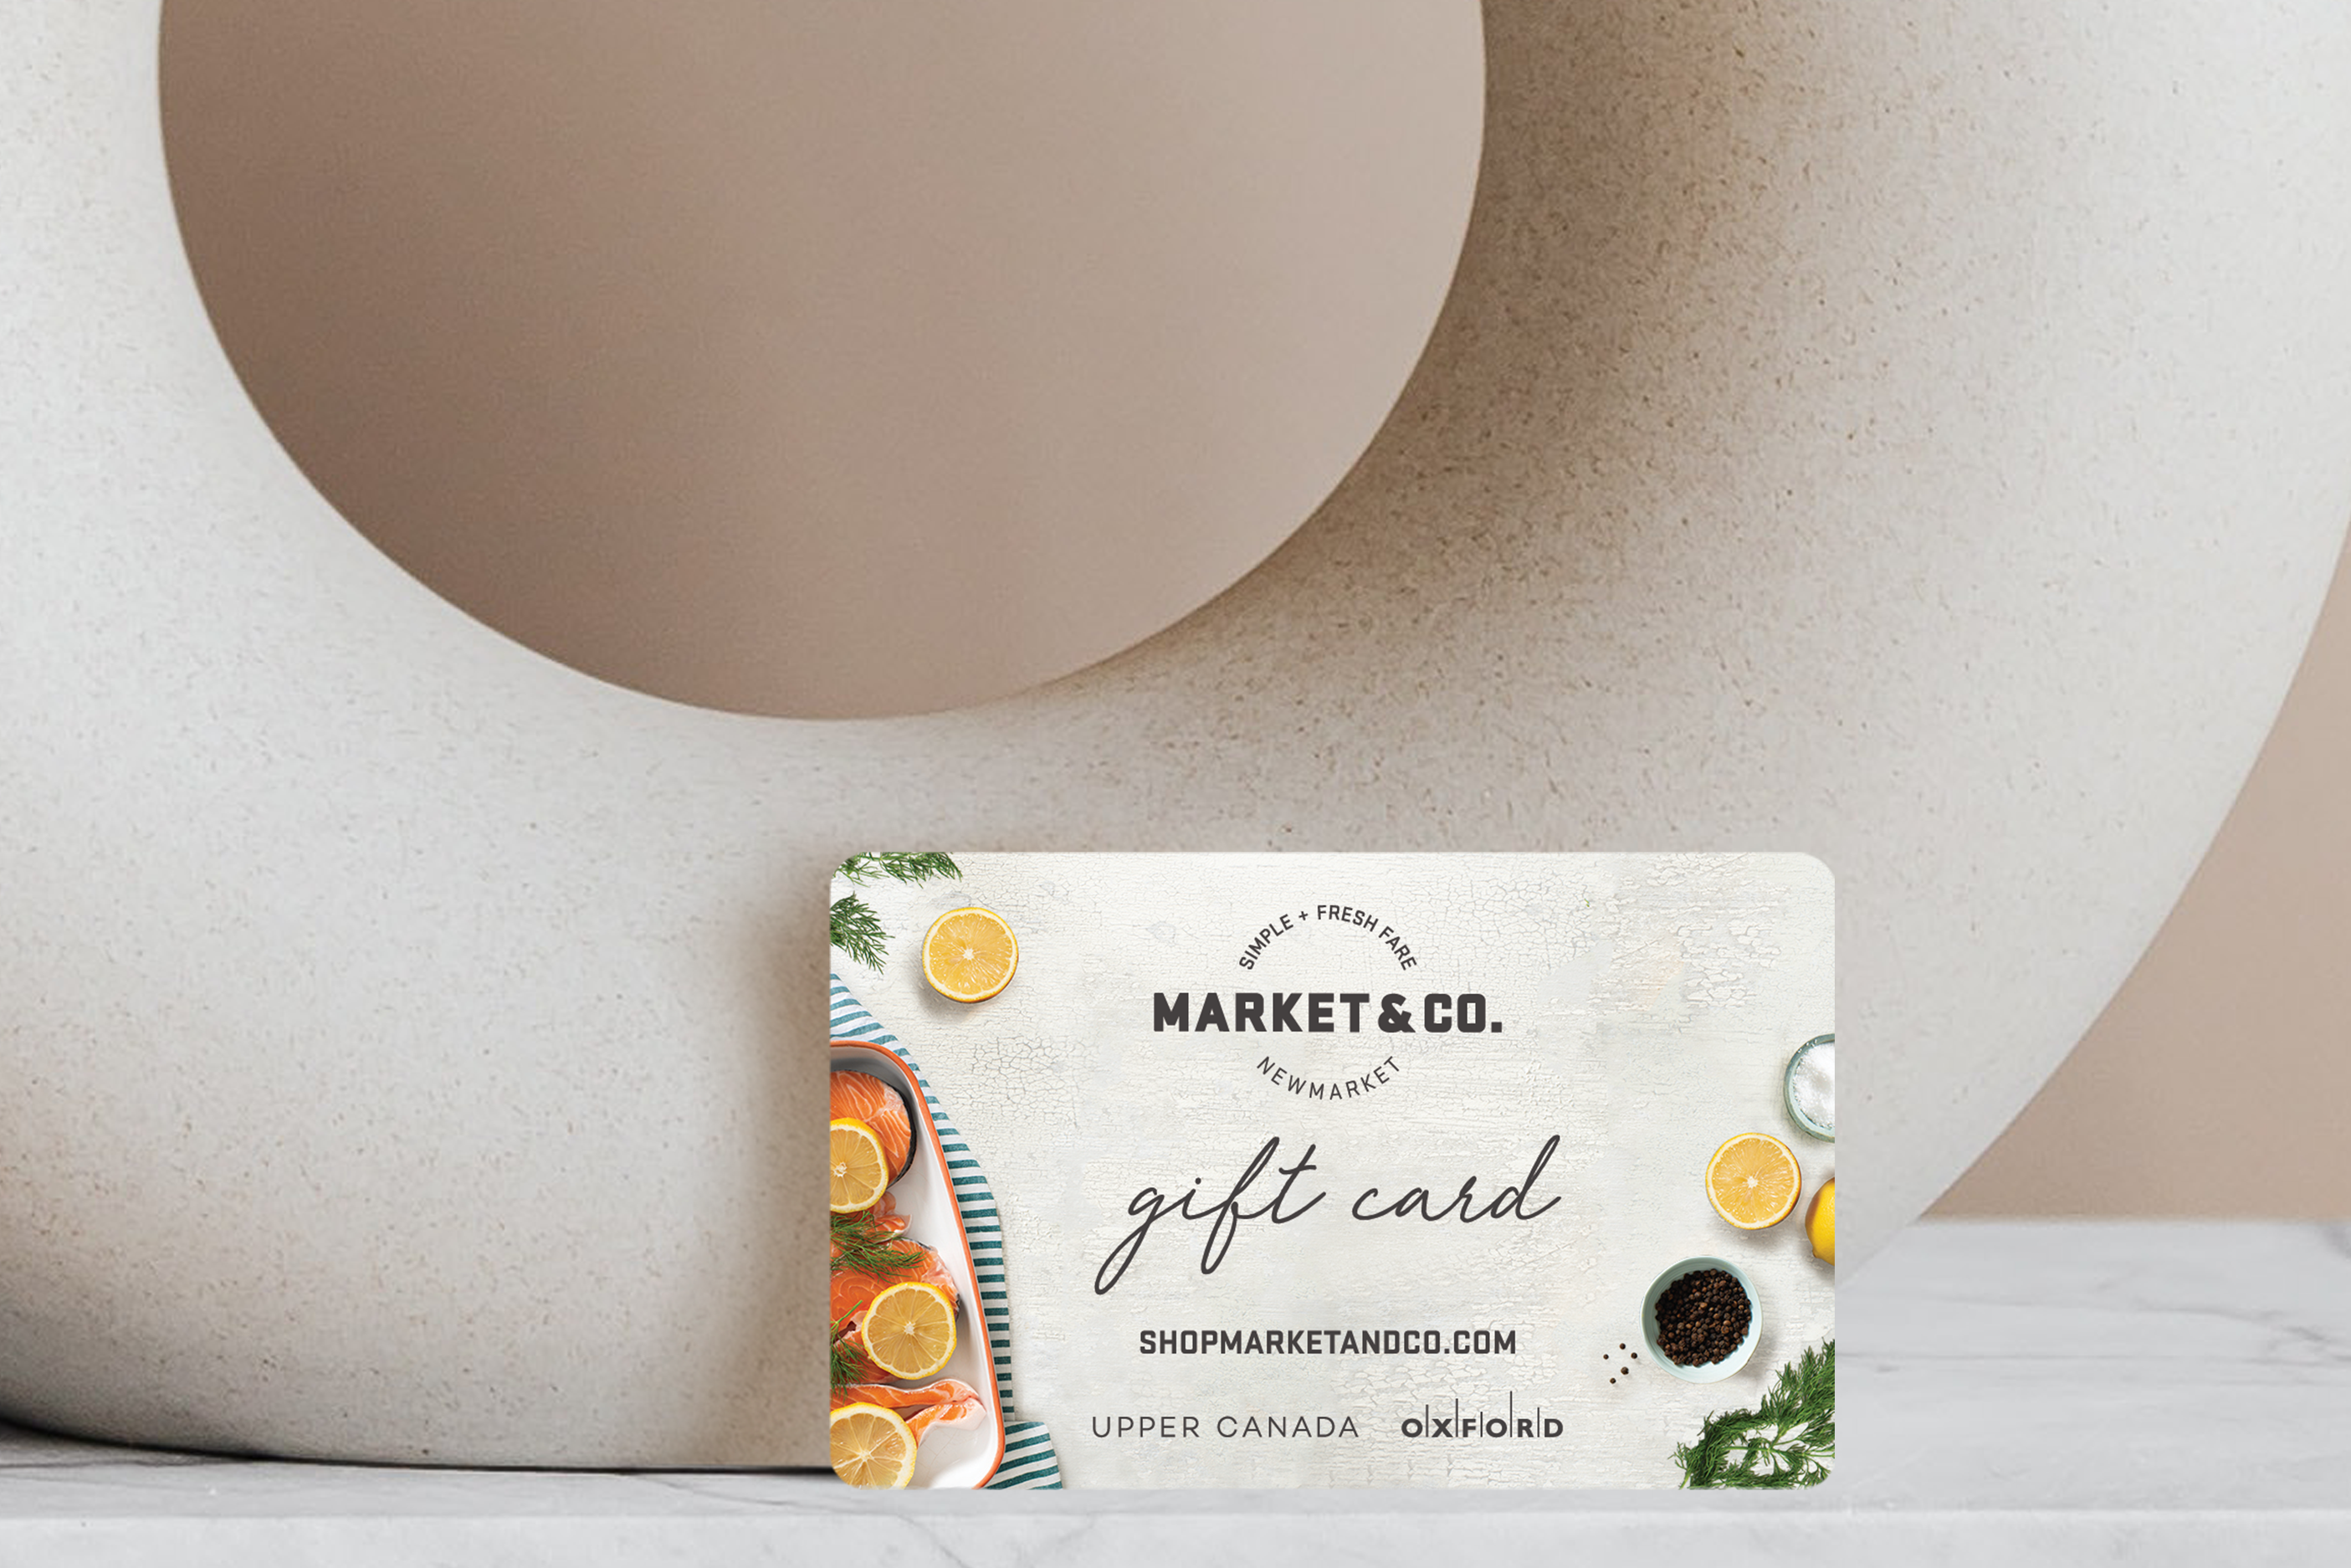 Market & Co. Gift Card